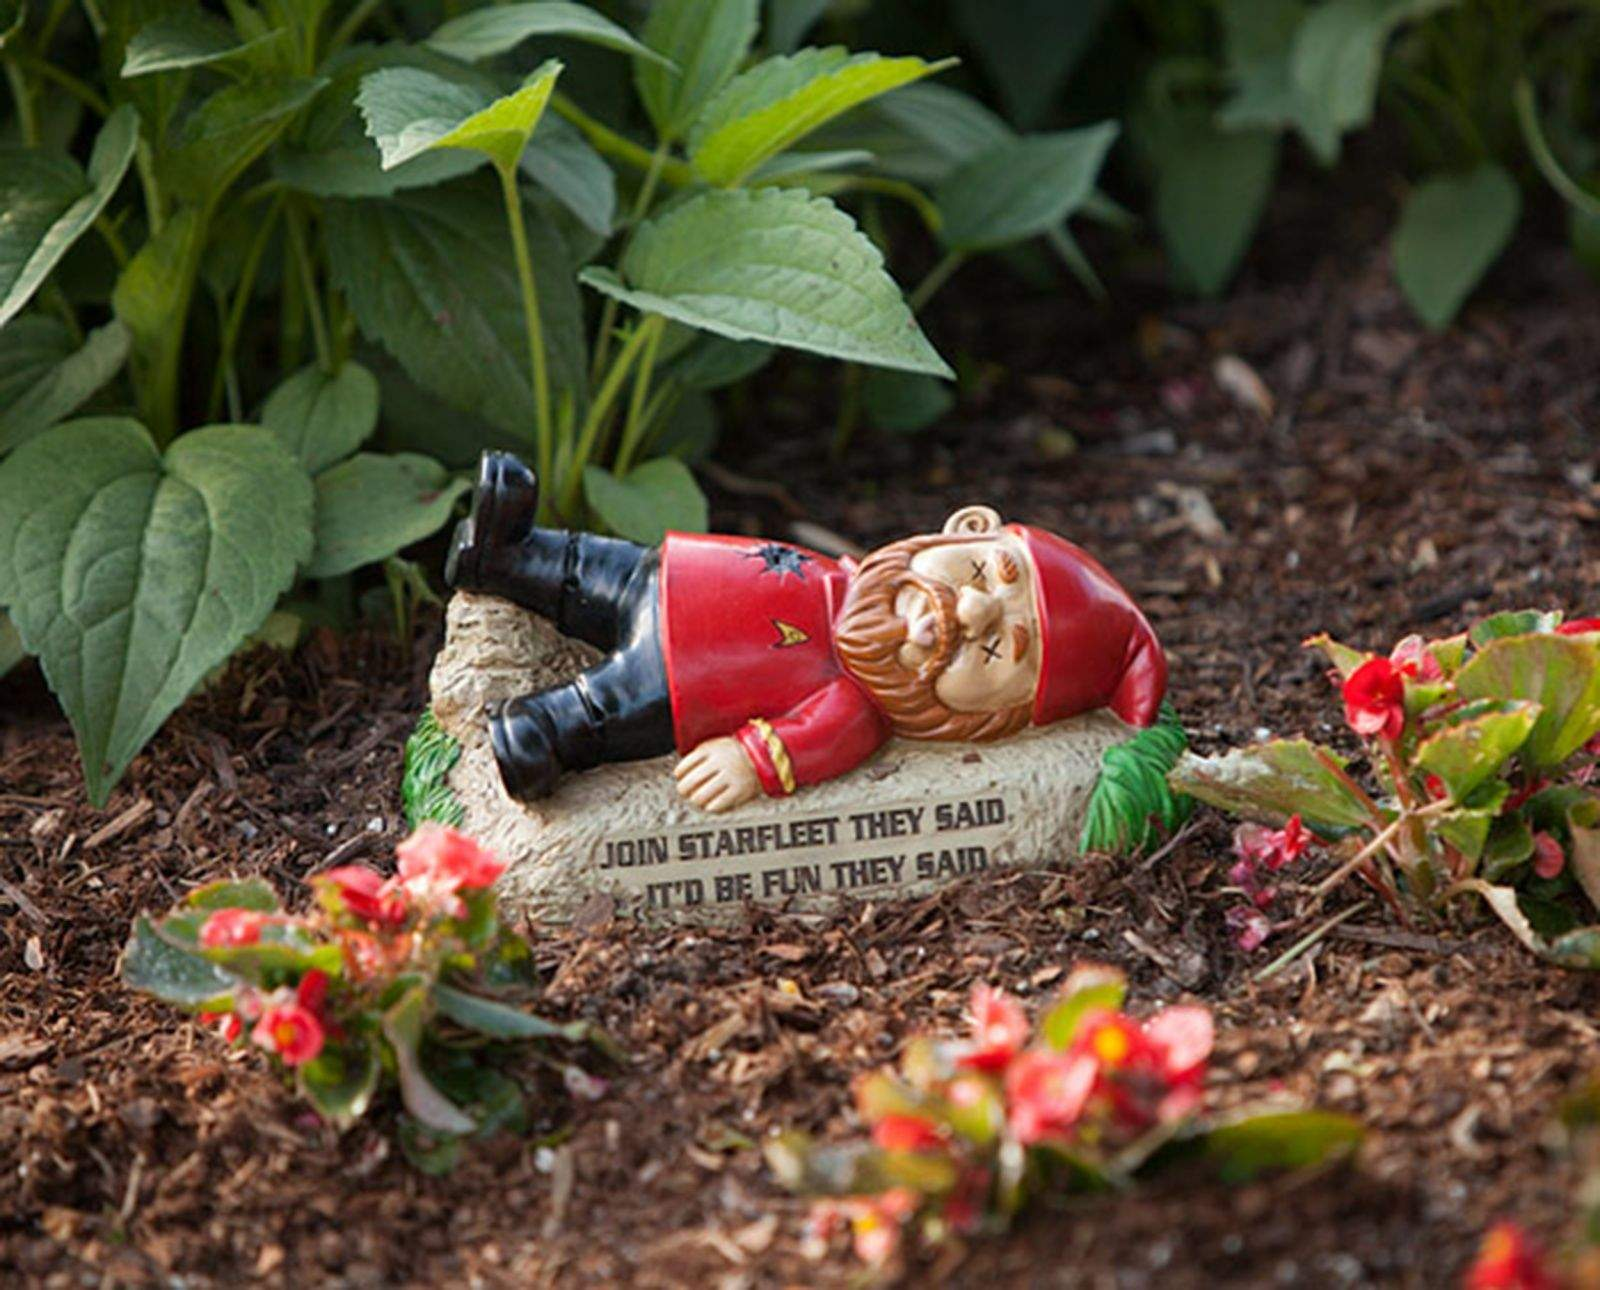 Gnome Garden: Star Trek Garden Gnomes Should Boldly Go In Your Back Yard